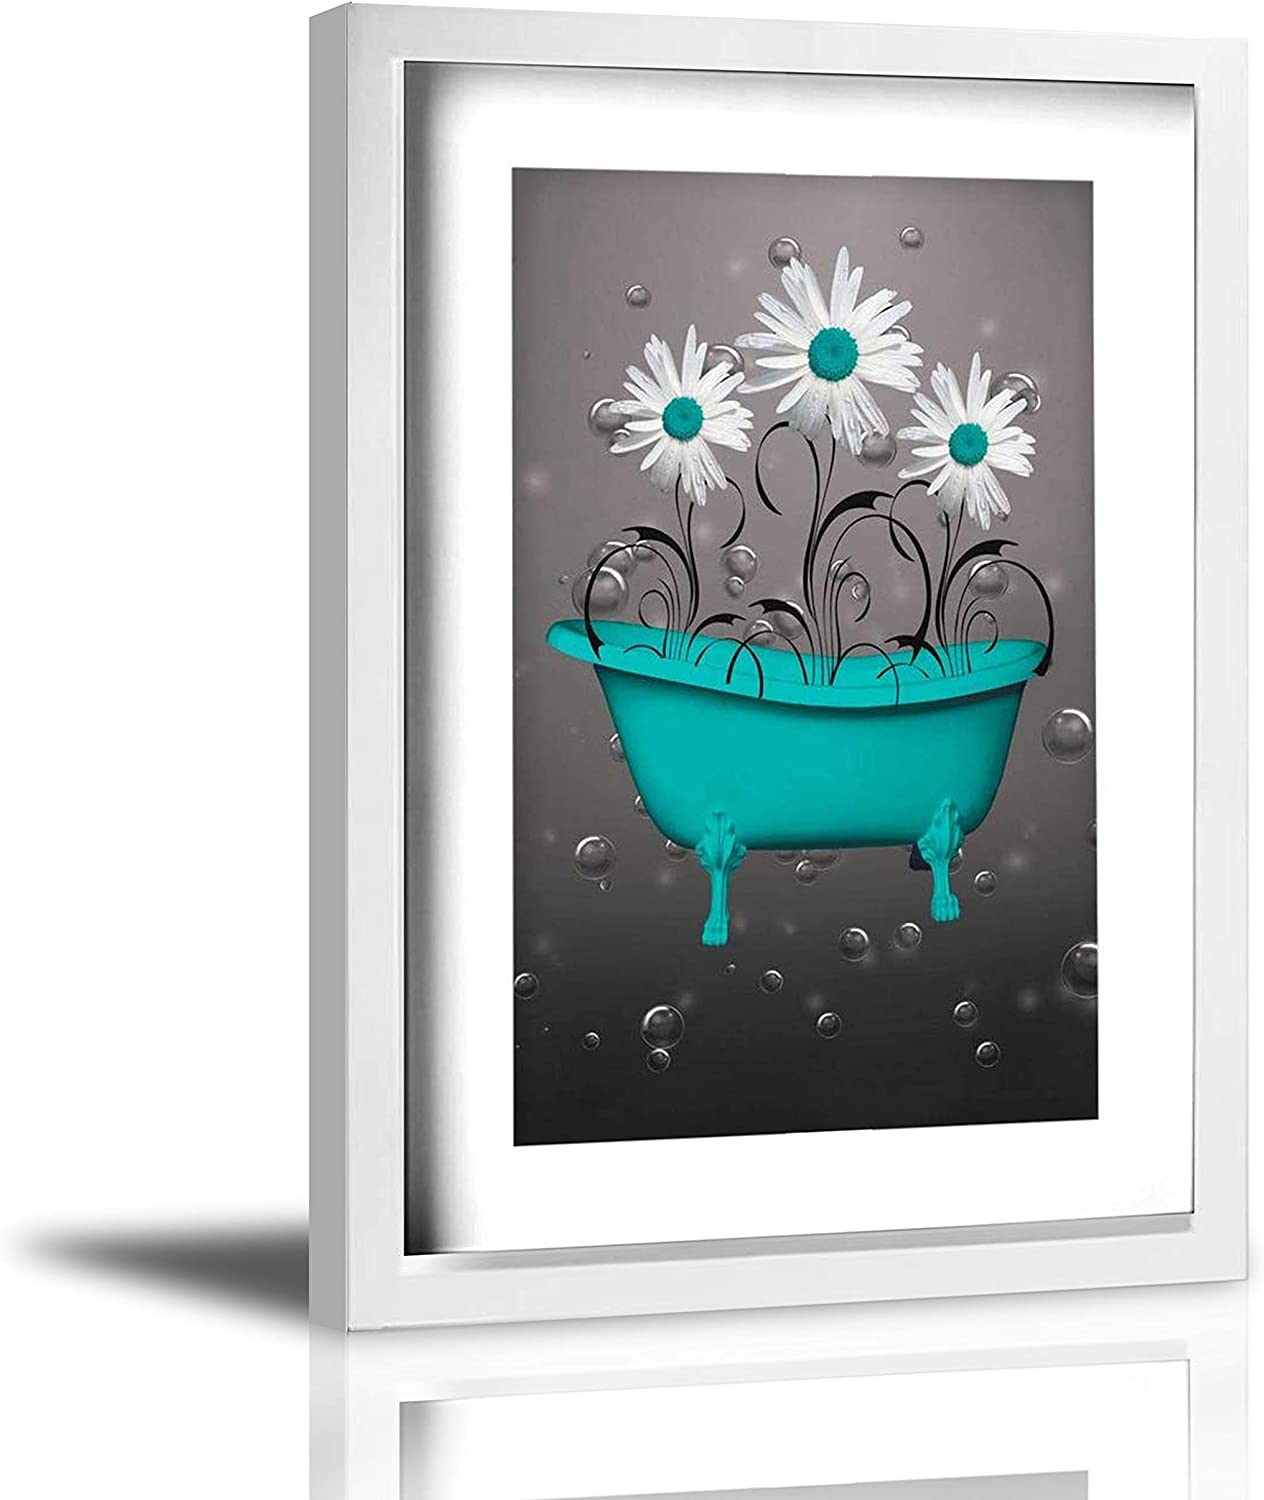 """Coolertaste Teal Blue Gray Daisy Flowers Bubbles Rustic Canvas Wall Art Prints Framed Picture Wall Decor Vintage Bathroom Decor Ready To Hang 9"""" X 13"""""""